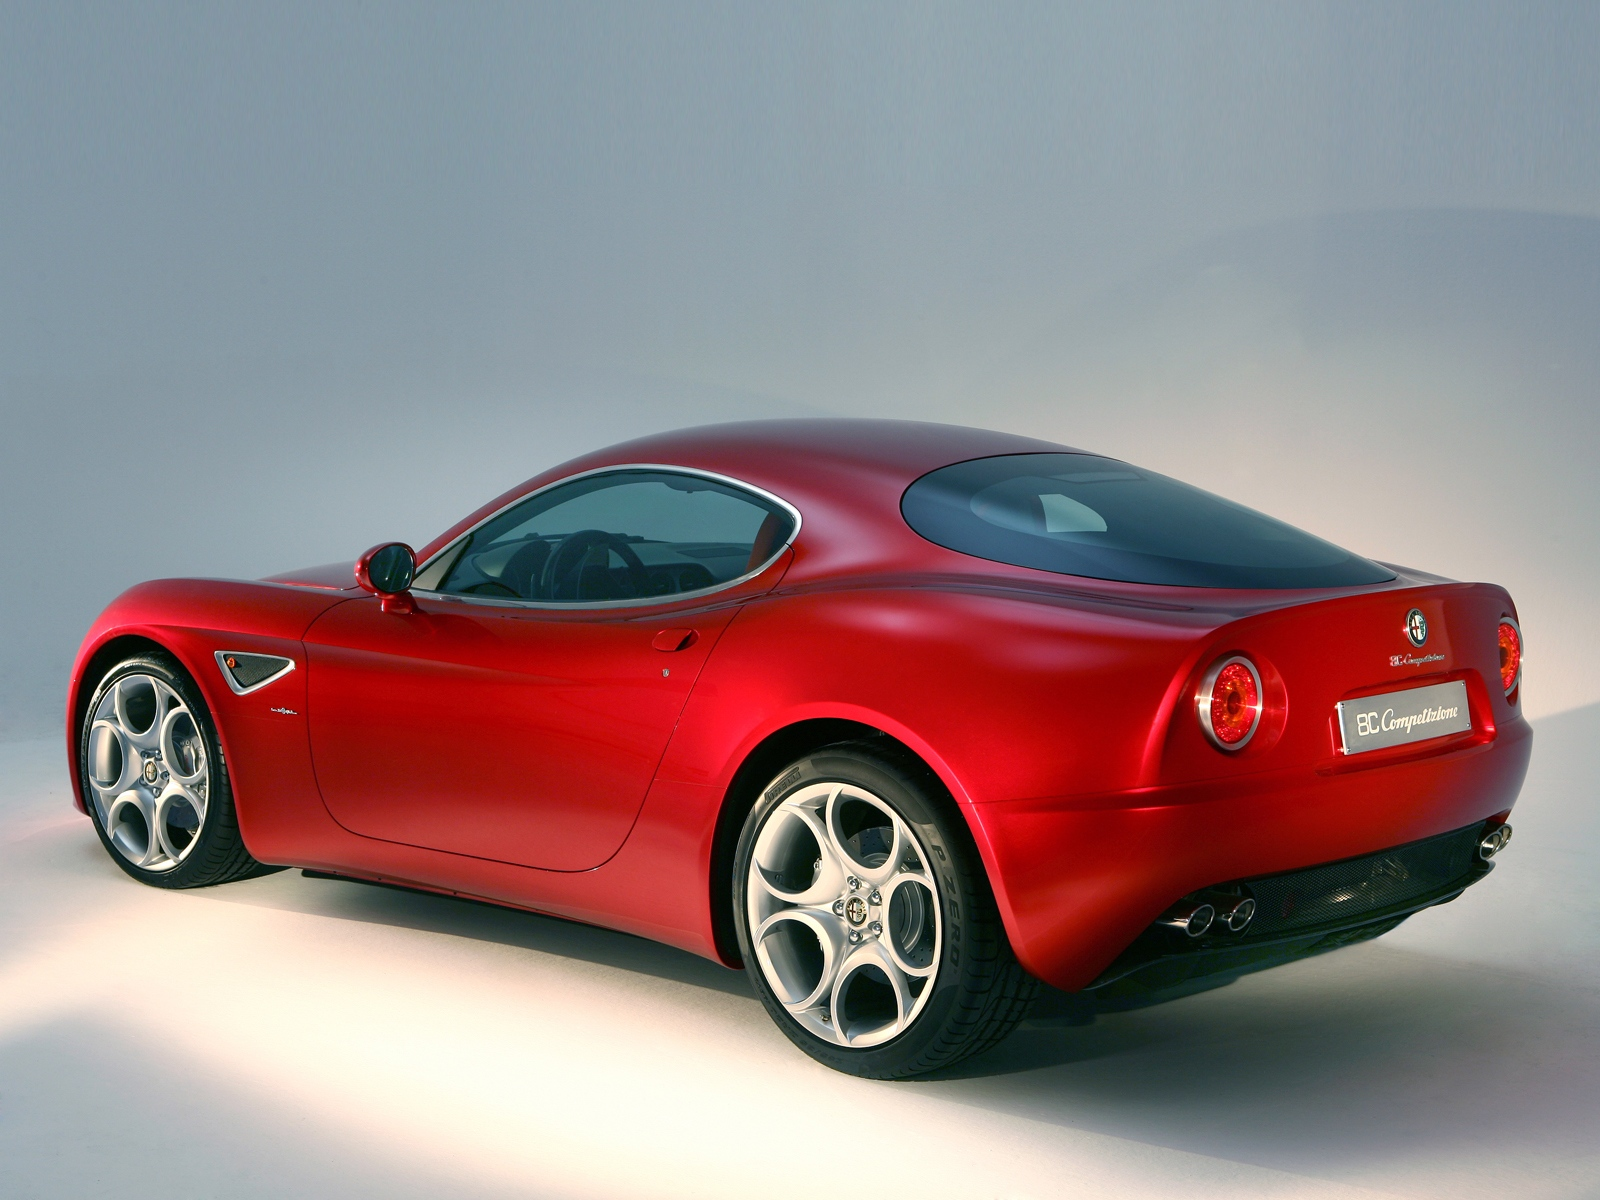 alfa romeo 8c competizione 2007 car pictures. Cars Review. Best American Auto & Cars Review